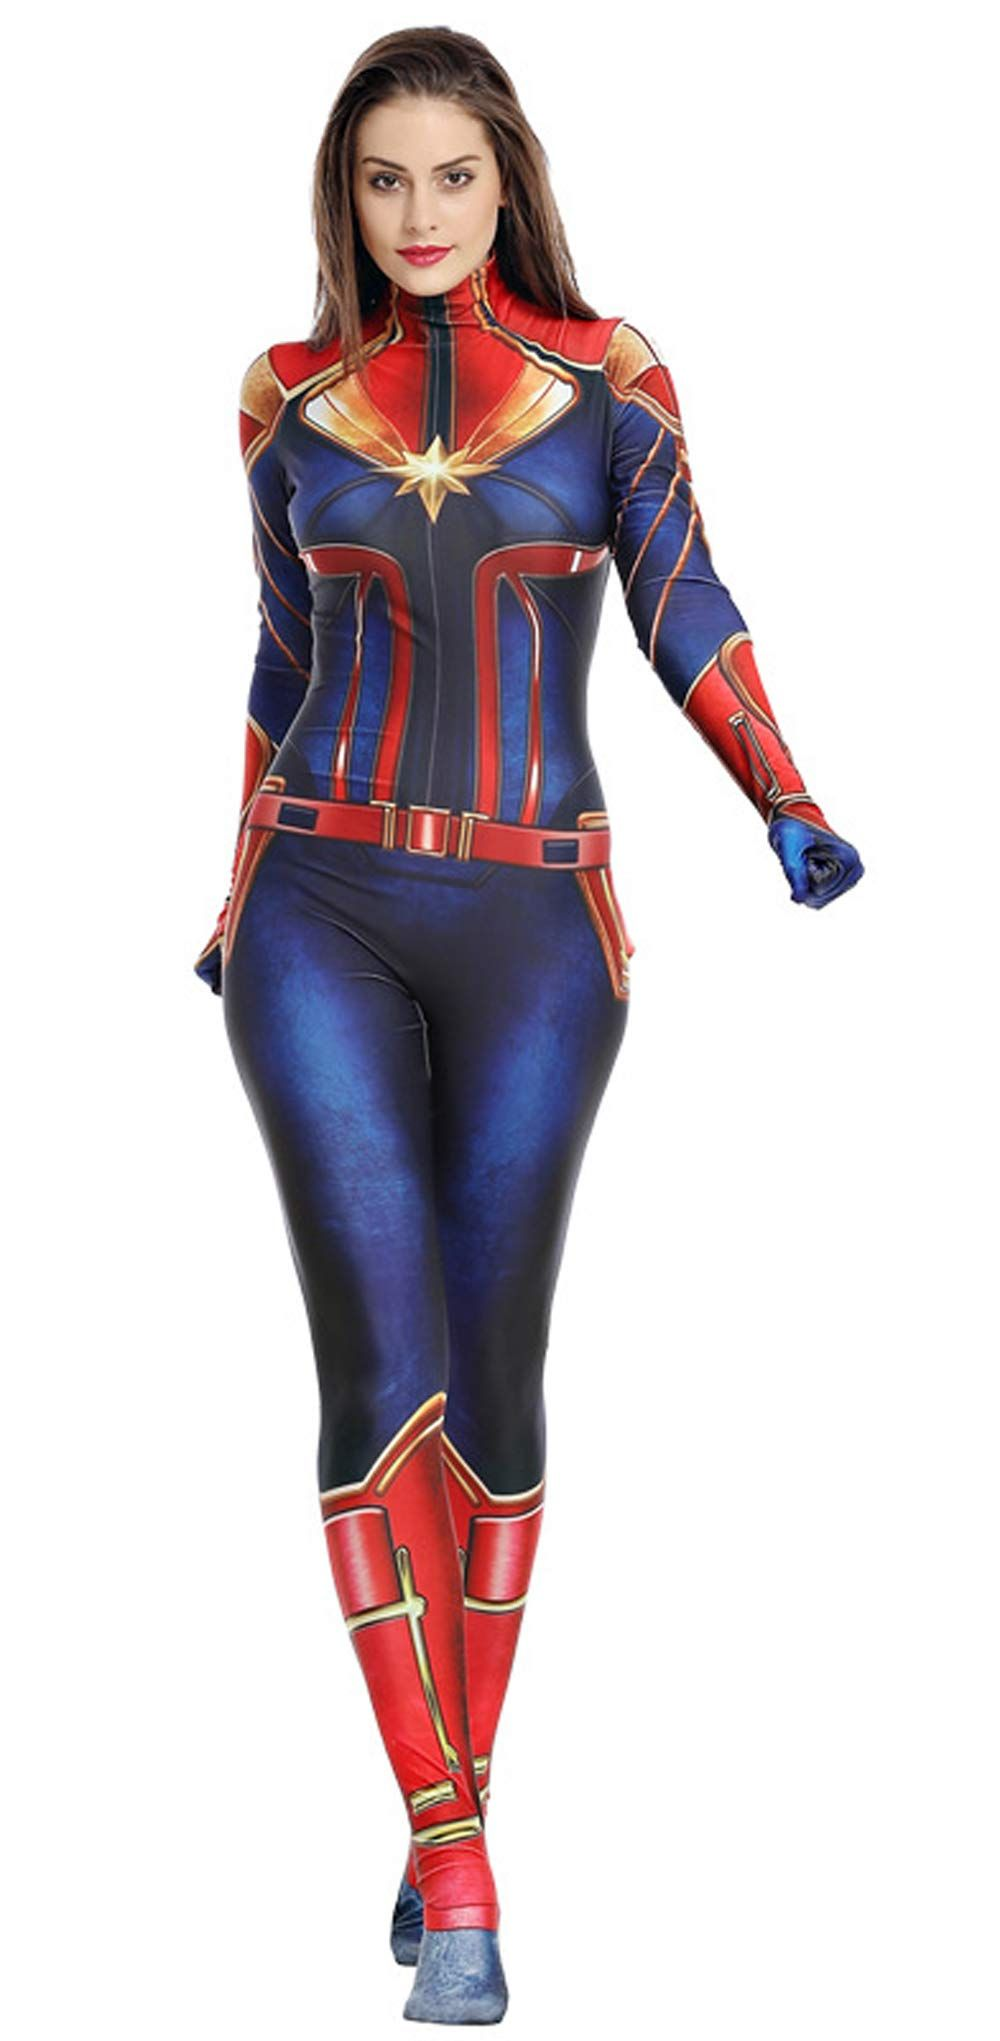 Captain Marvel Cosplay Superhero Costume Full Set Outfit Halloween Hero Costume